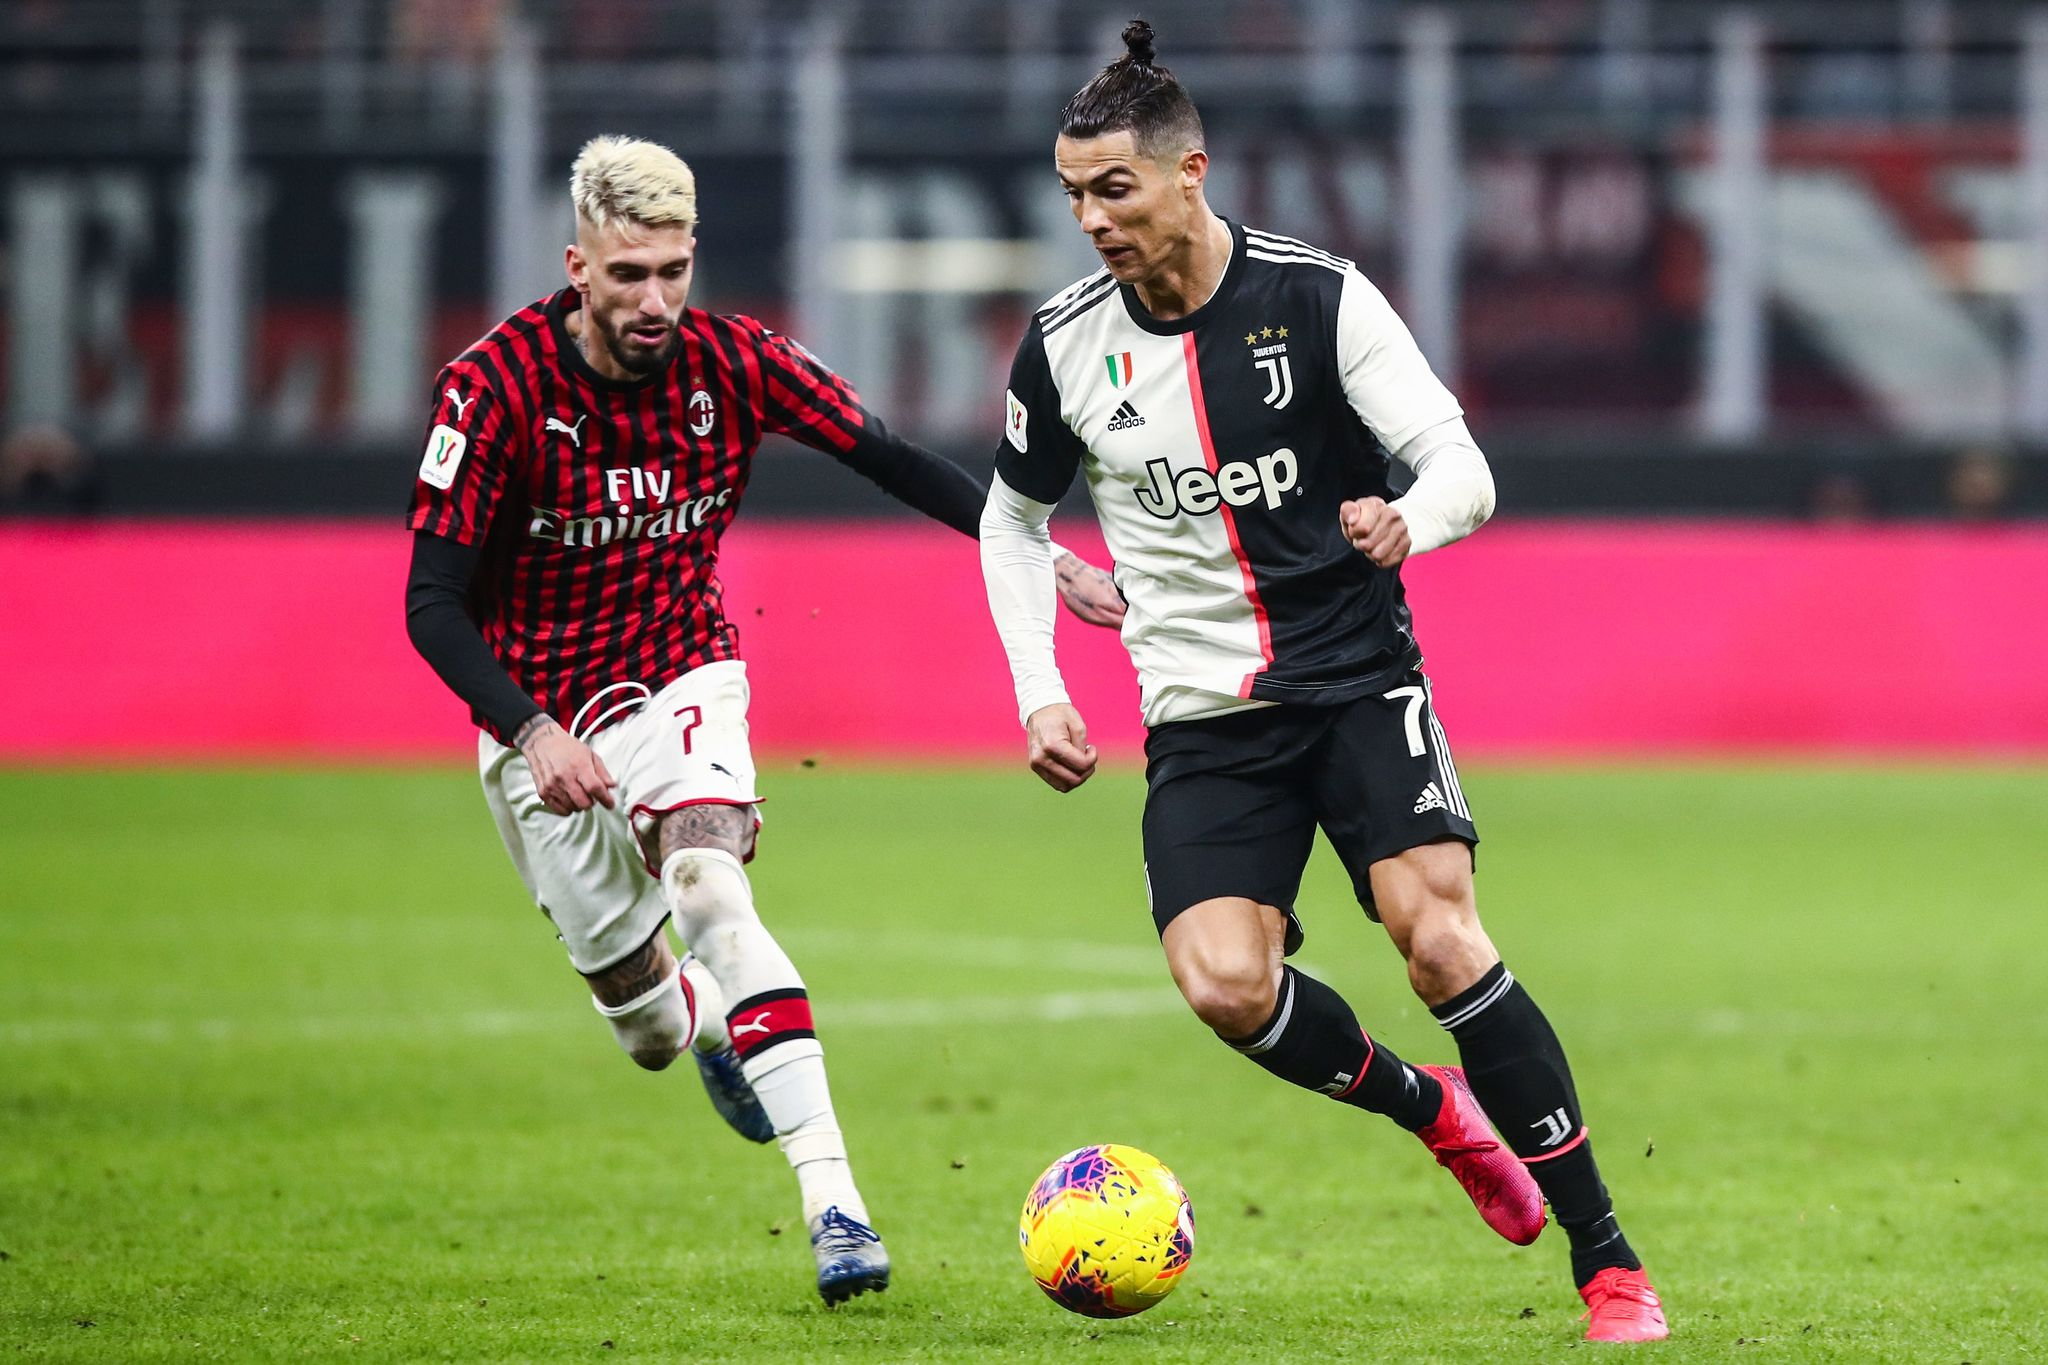 Juventus Portuguese forward lt;HIT gt;Cristiano lt;/HIT gt; Ronaldo (R) challenges AC Milans Spanish forward Samu Castillejo during the Italian Cup (Coppa Italia) semi-final first leg football match AC Milan vs Juventus Turin on February 13, 2020 at the San Siro stadium in Milan. (Photo by Isabella BONOTTO / AFP)